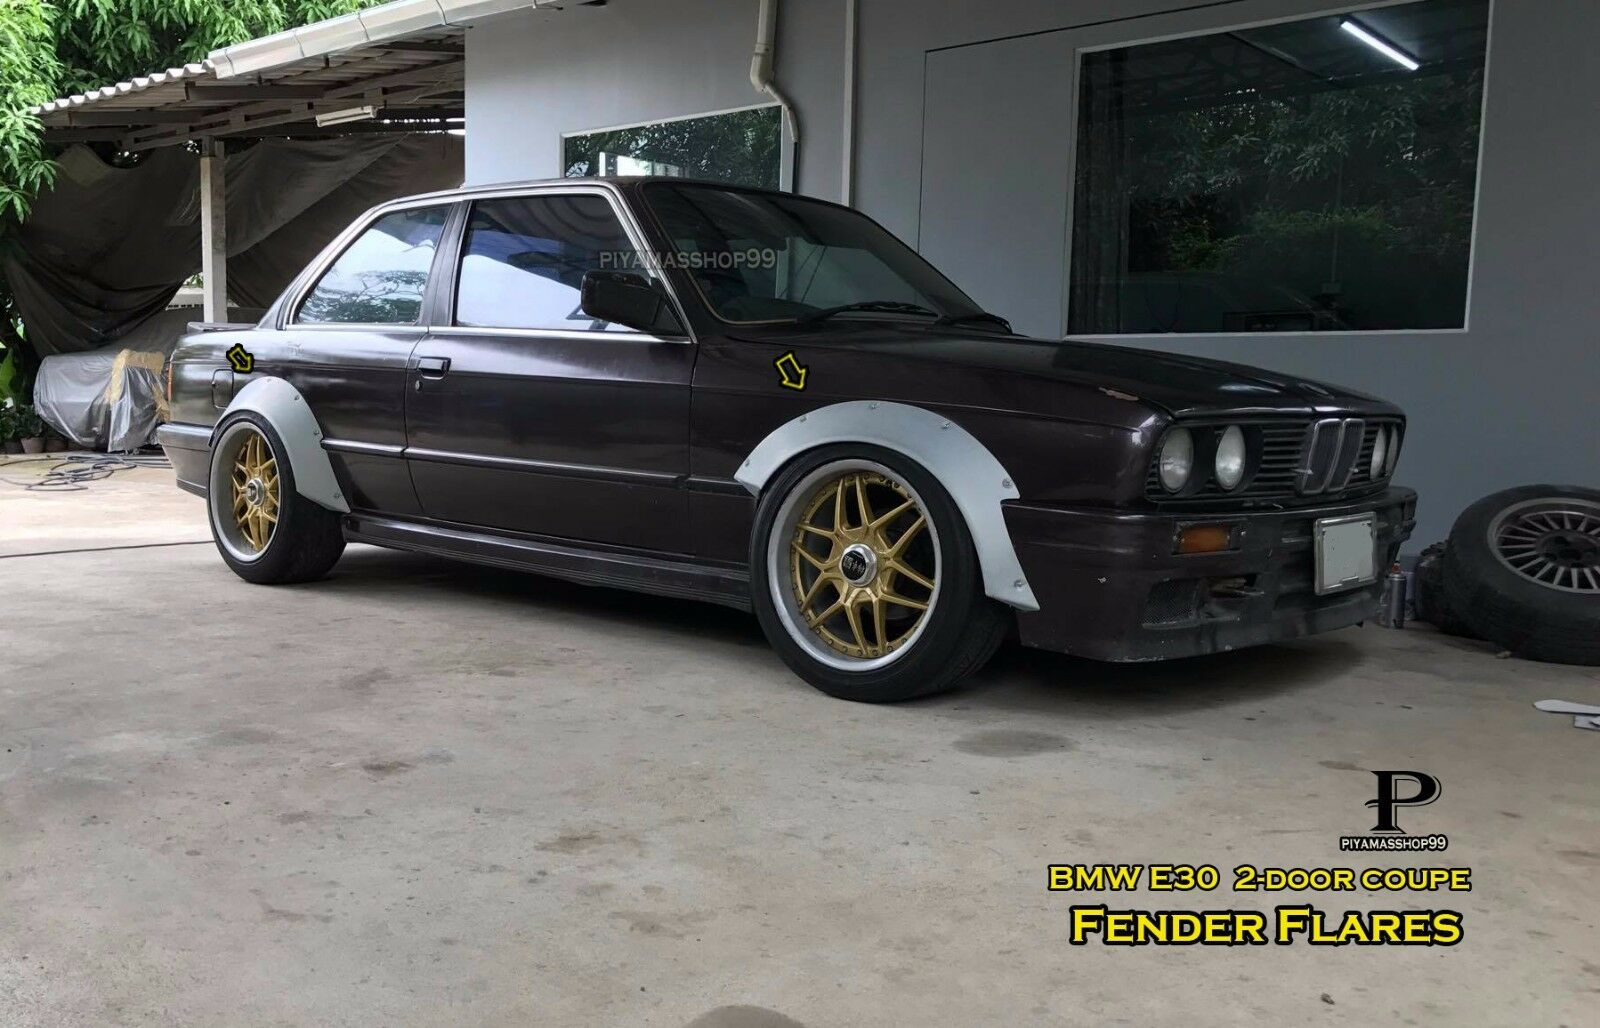 Fender Flares Rocket Bunny Style For Bmw E30 Coupe Materials Sheet Metal Jdm